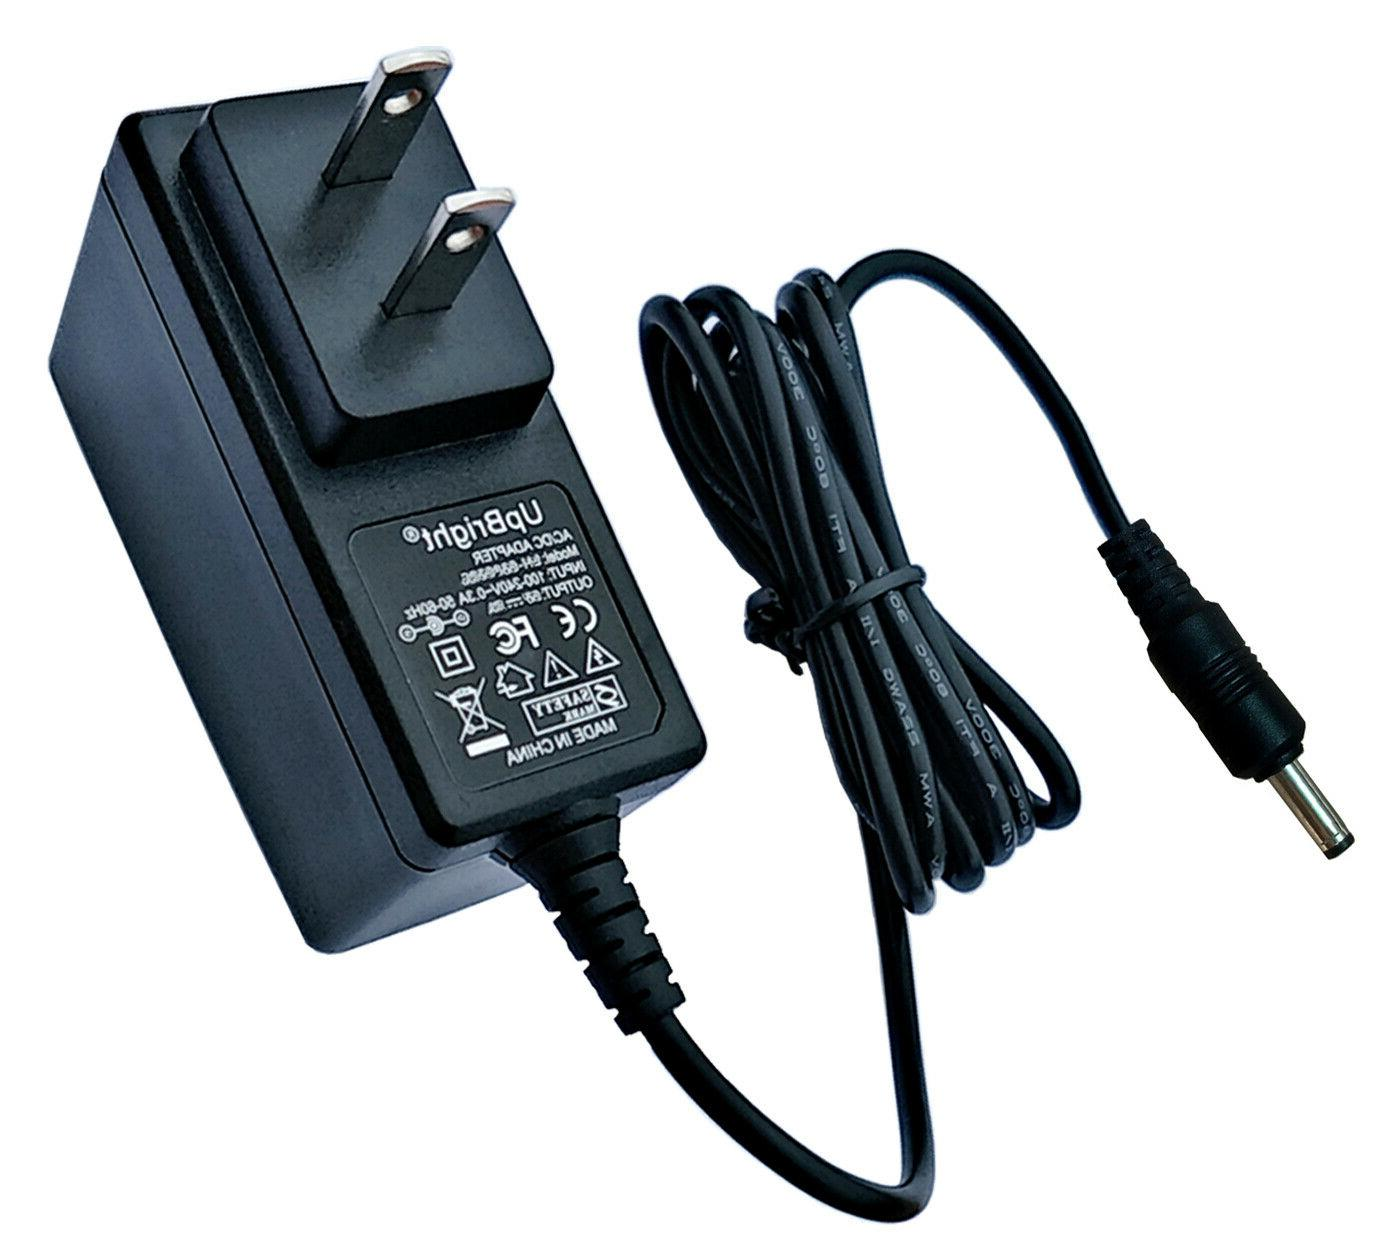 ac power adapter for ultratec miniprint 225